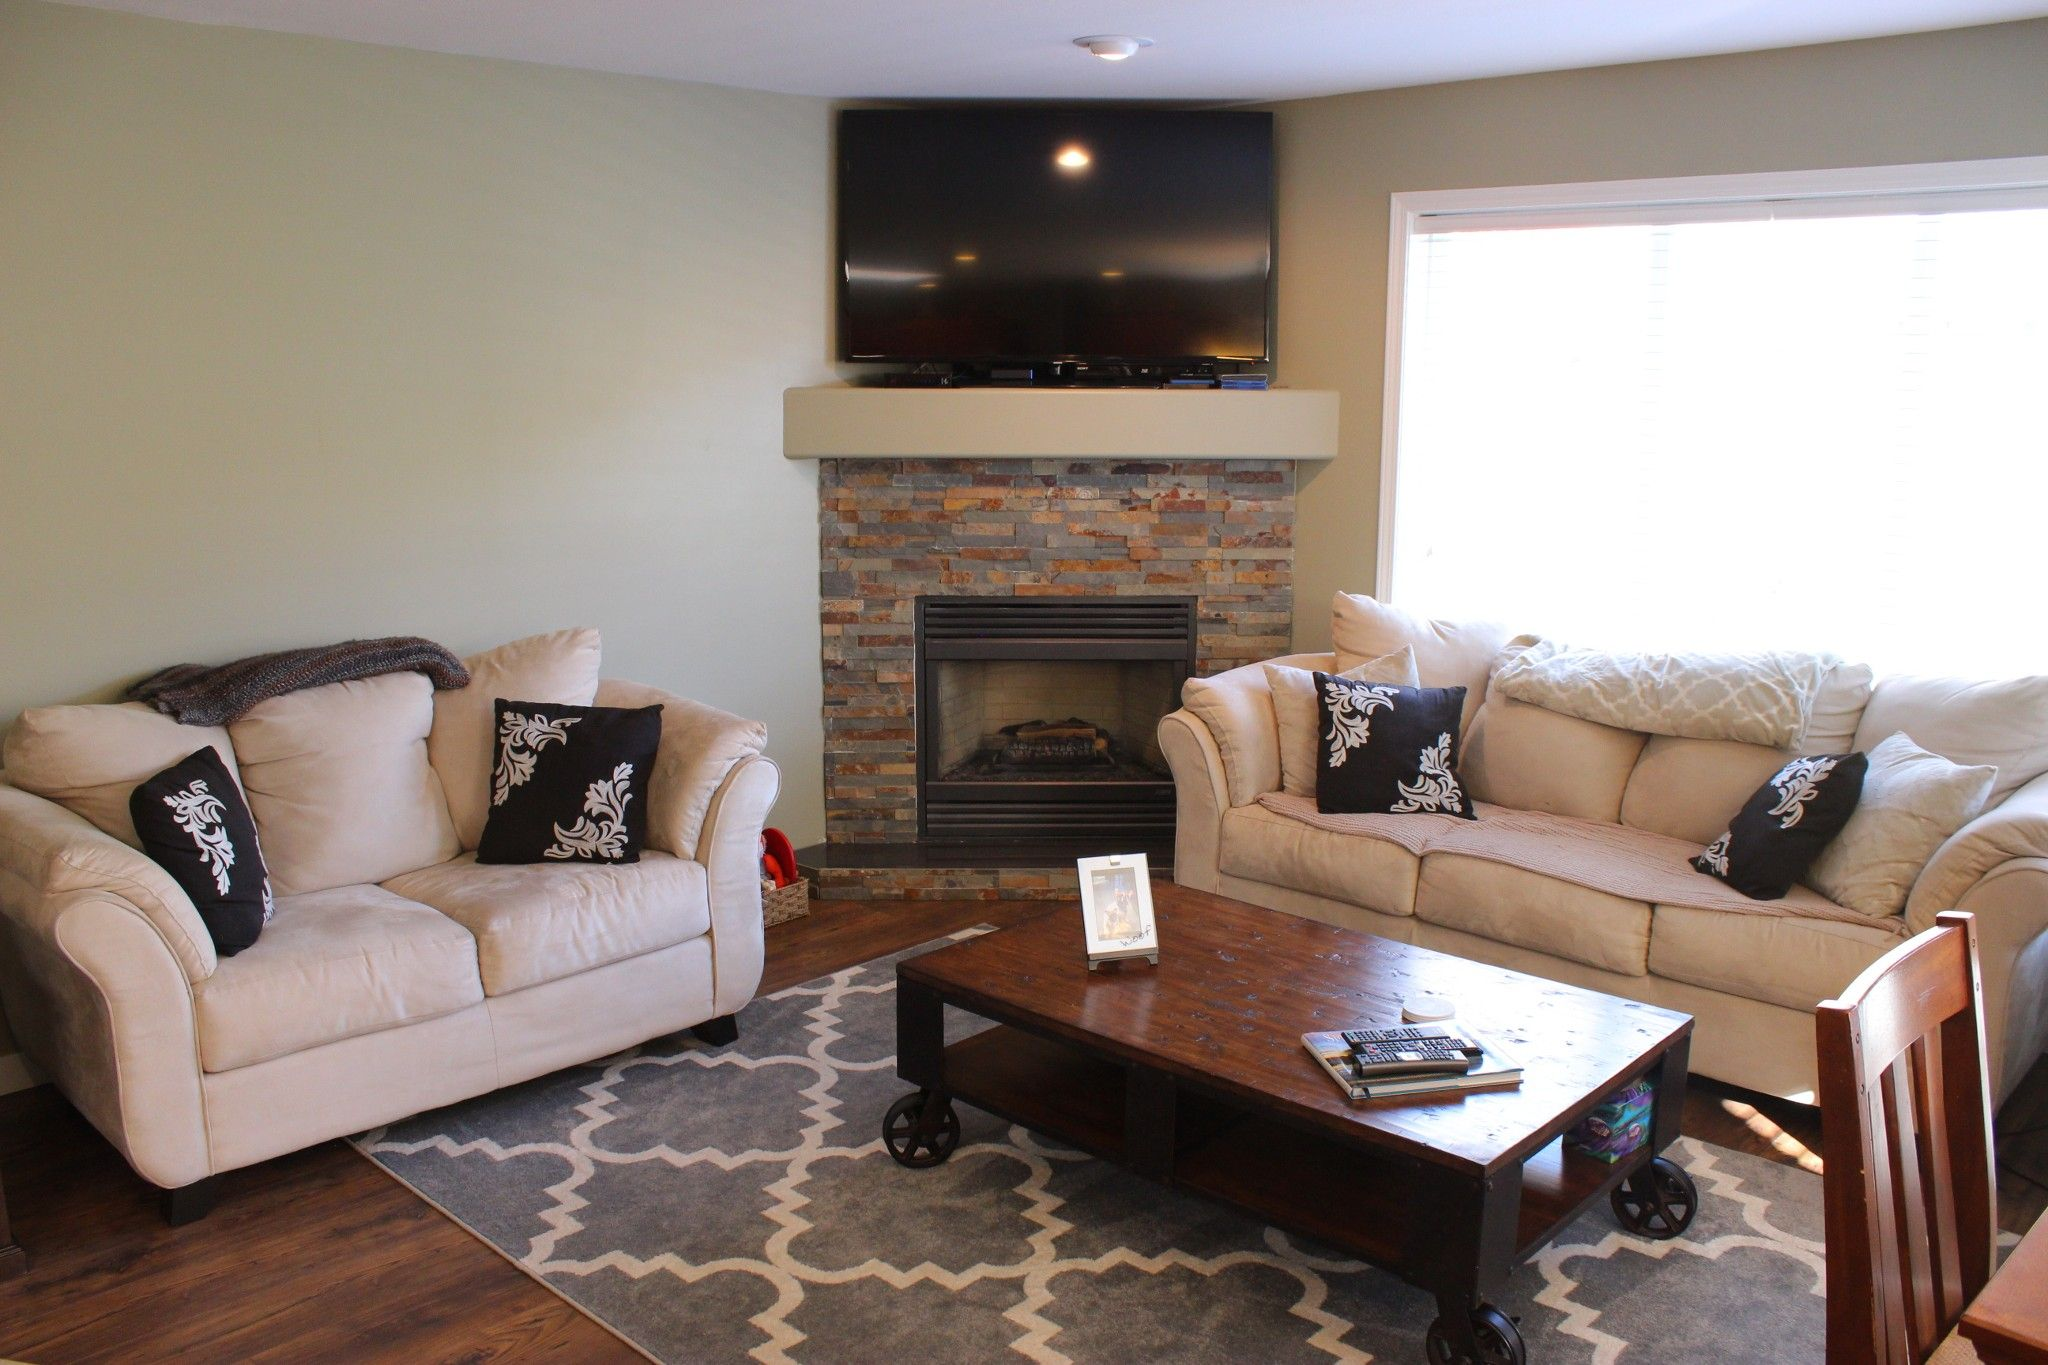 Photo 9: Photos: 3696 Navatanee Drive in Kamloops: South Thompson Valley House for sale : MLS®# 148660